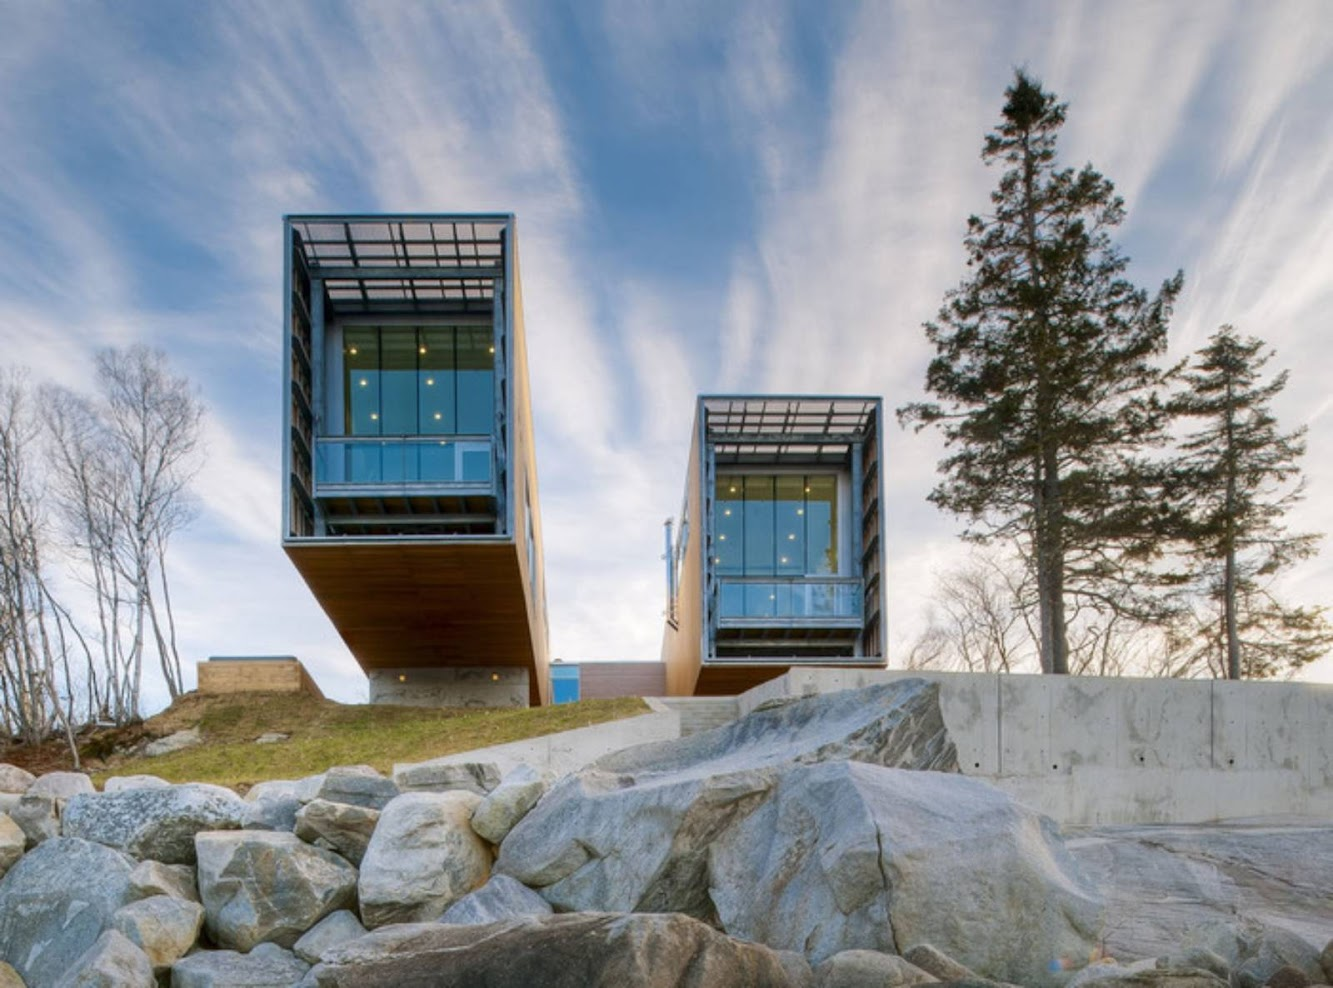 Nuova Scozia, Canada: Two Hulls House by Mackay-Lyons Sweetapple Architects